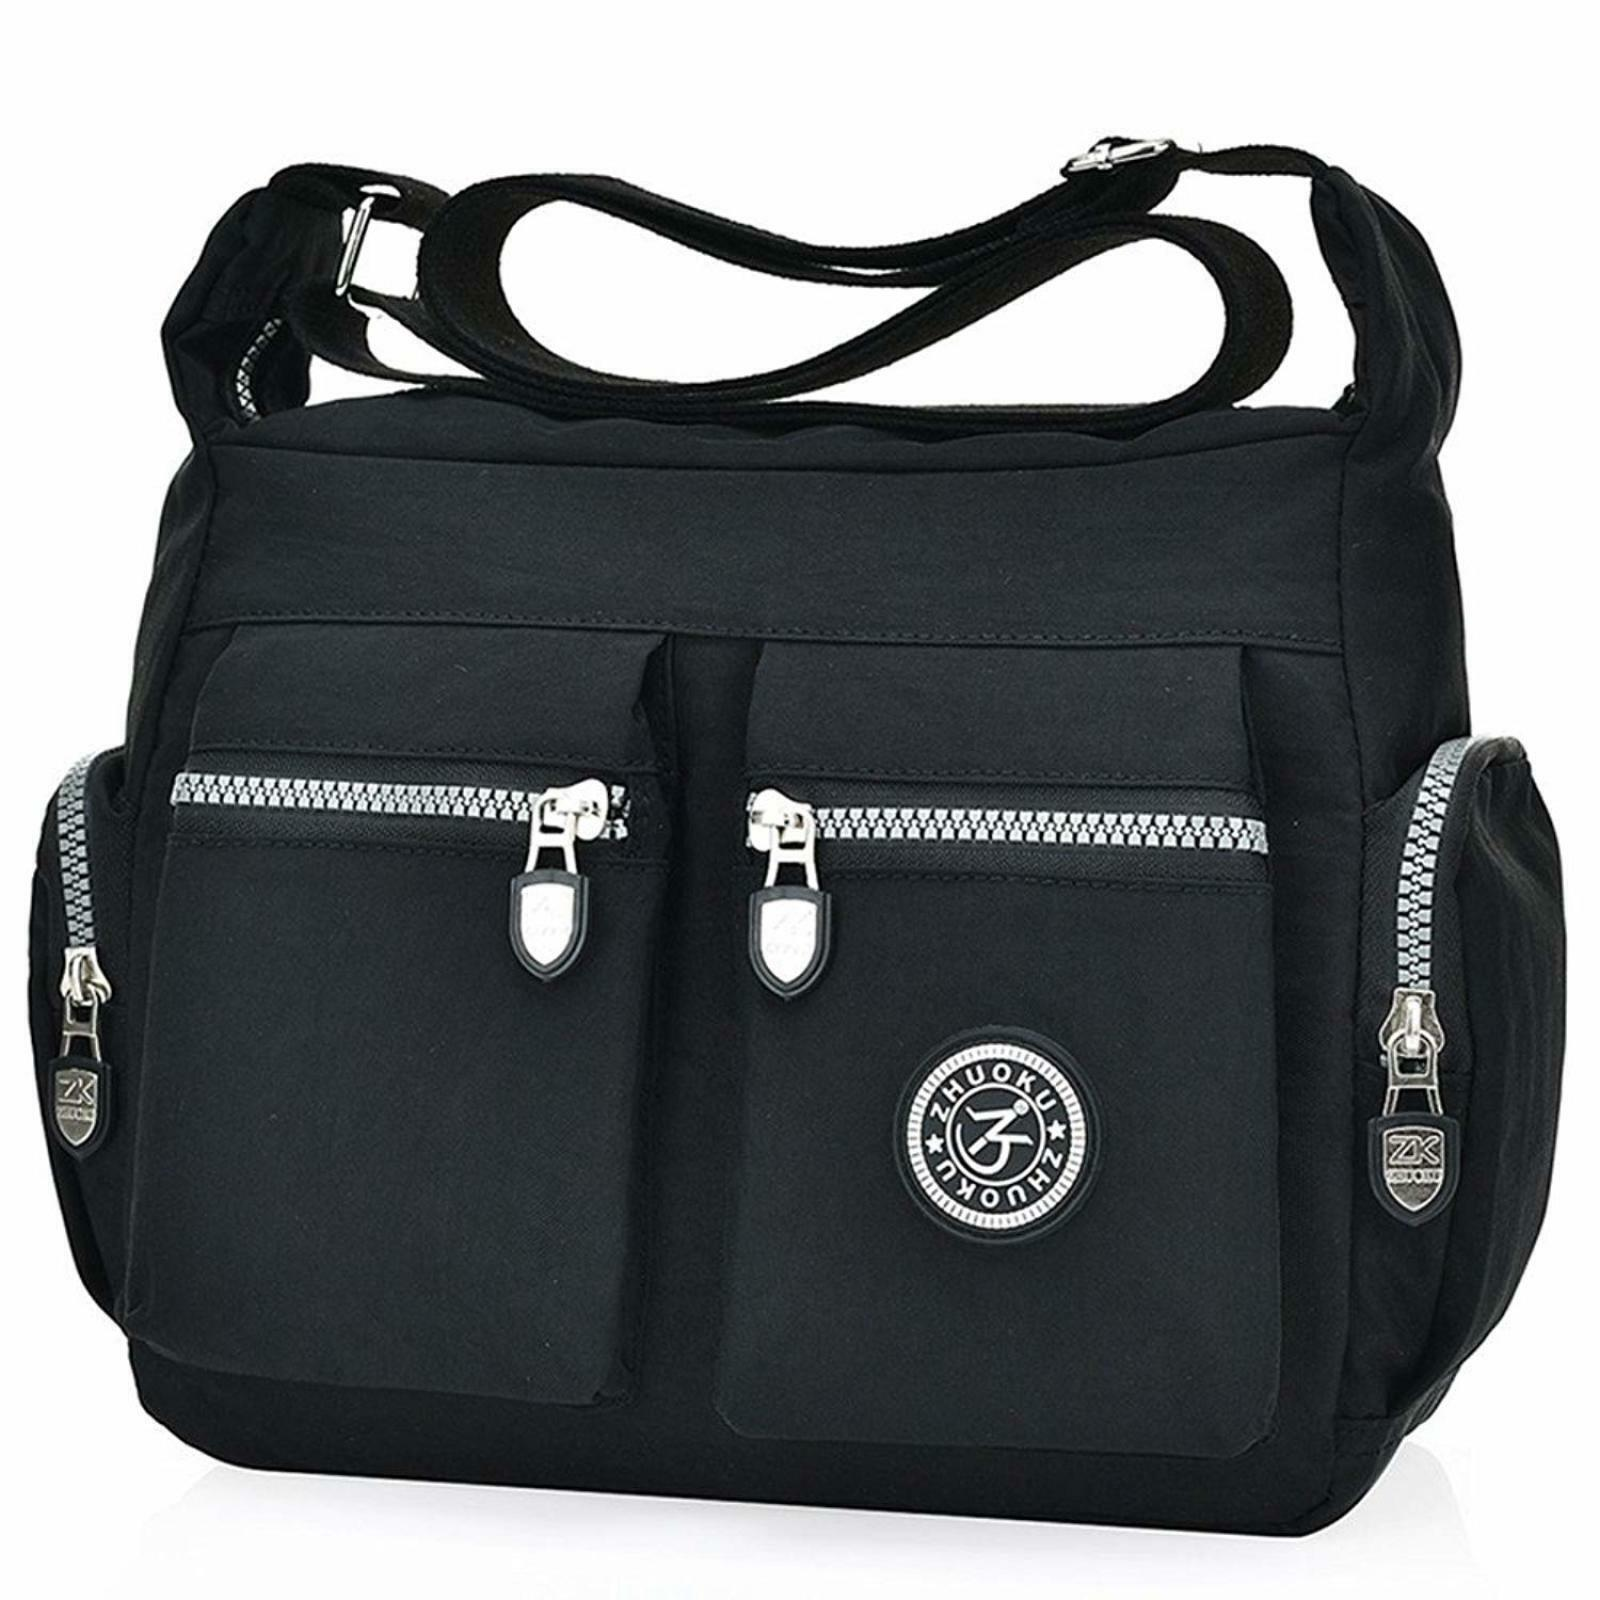 Women's Casual Multi Pocket Cross Body Shoulder Messenger Bag Ladies Handbag UK